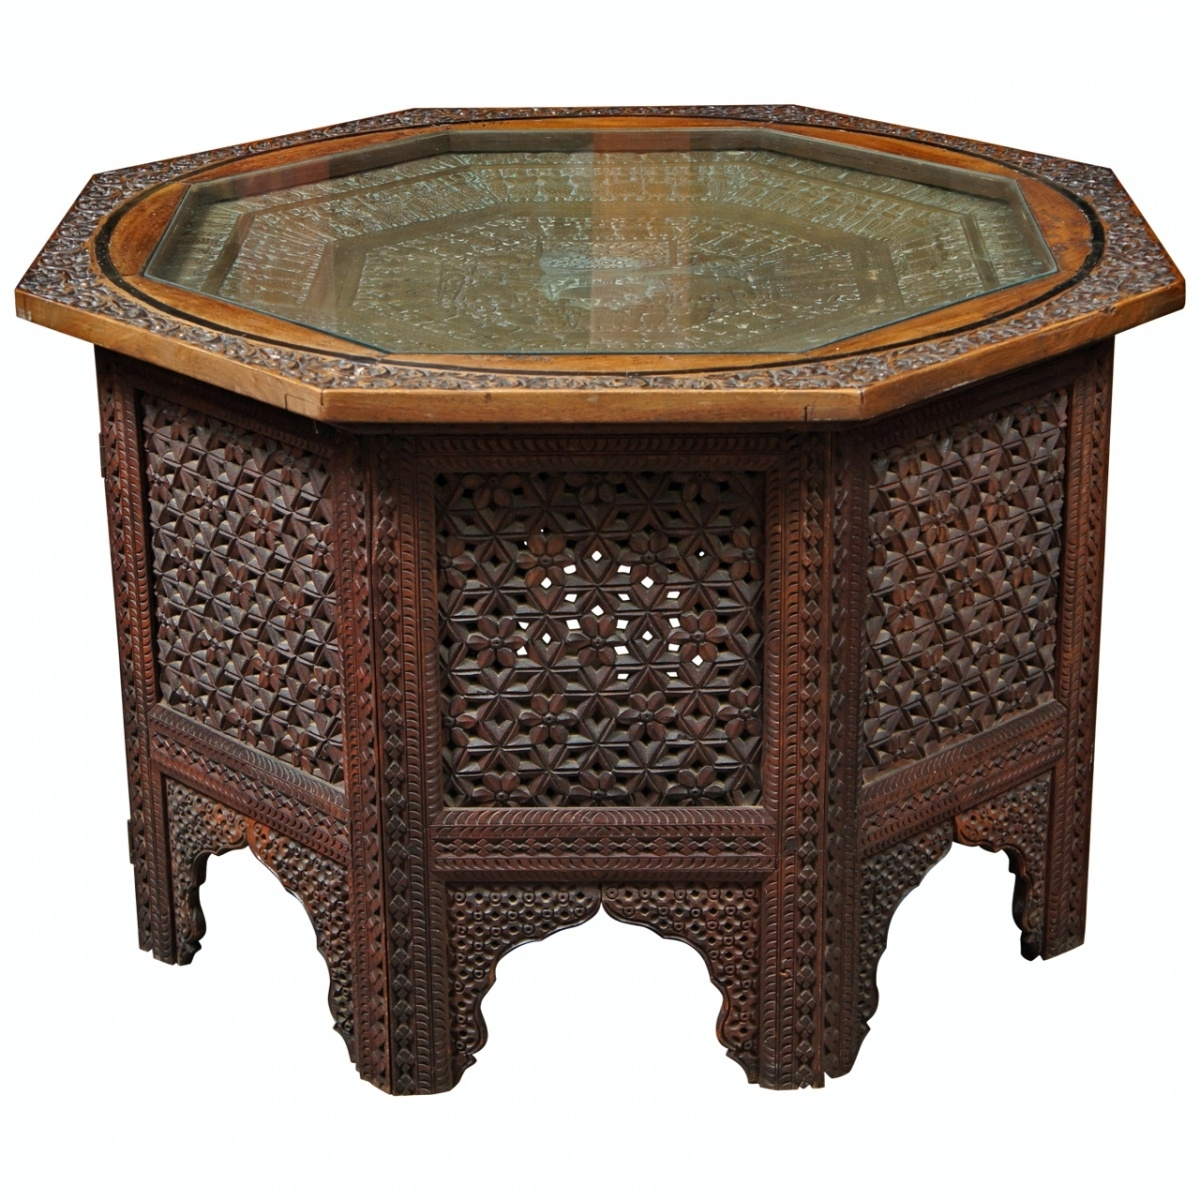 Best And Newest Round Carved Wood Coffee Tables Pertaining To Collection In Carved Wood Coffee Table With Wooden Coffee Tables (View 10 of 20)